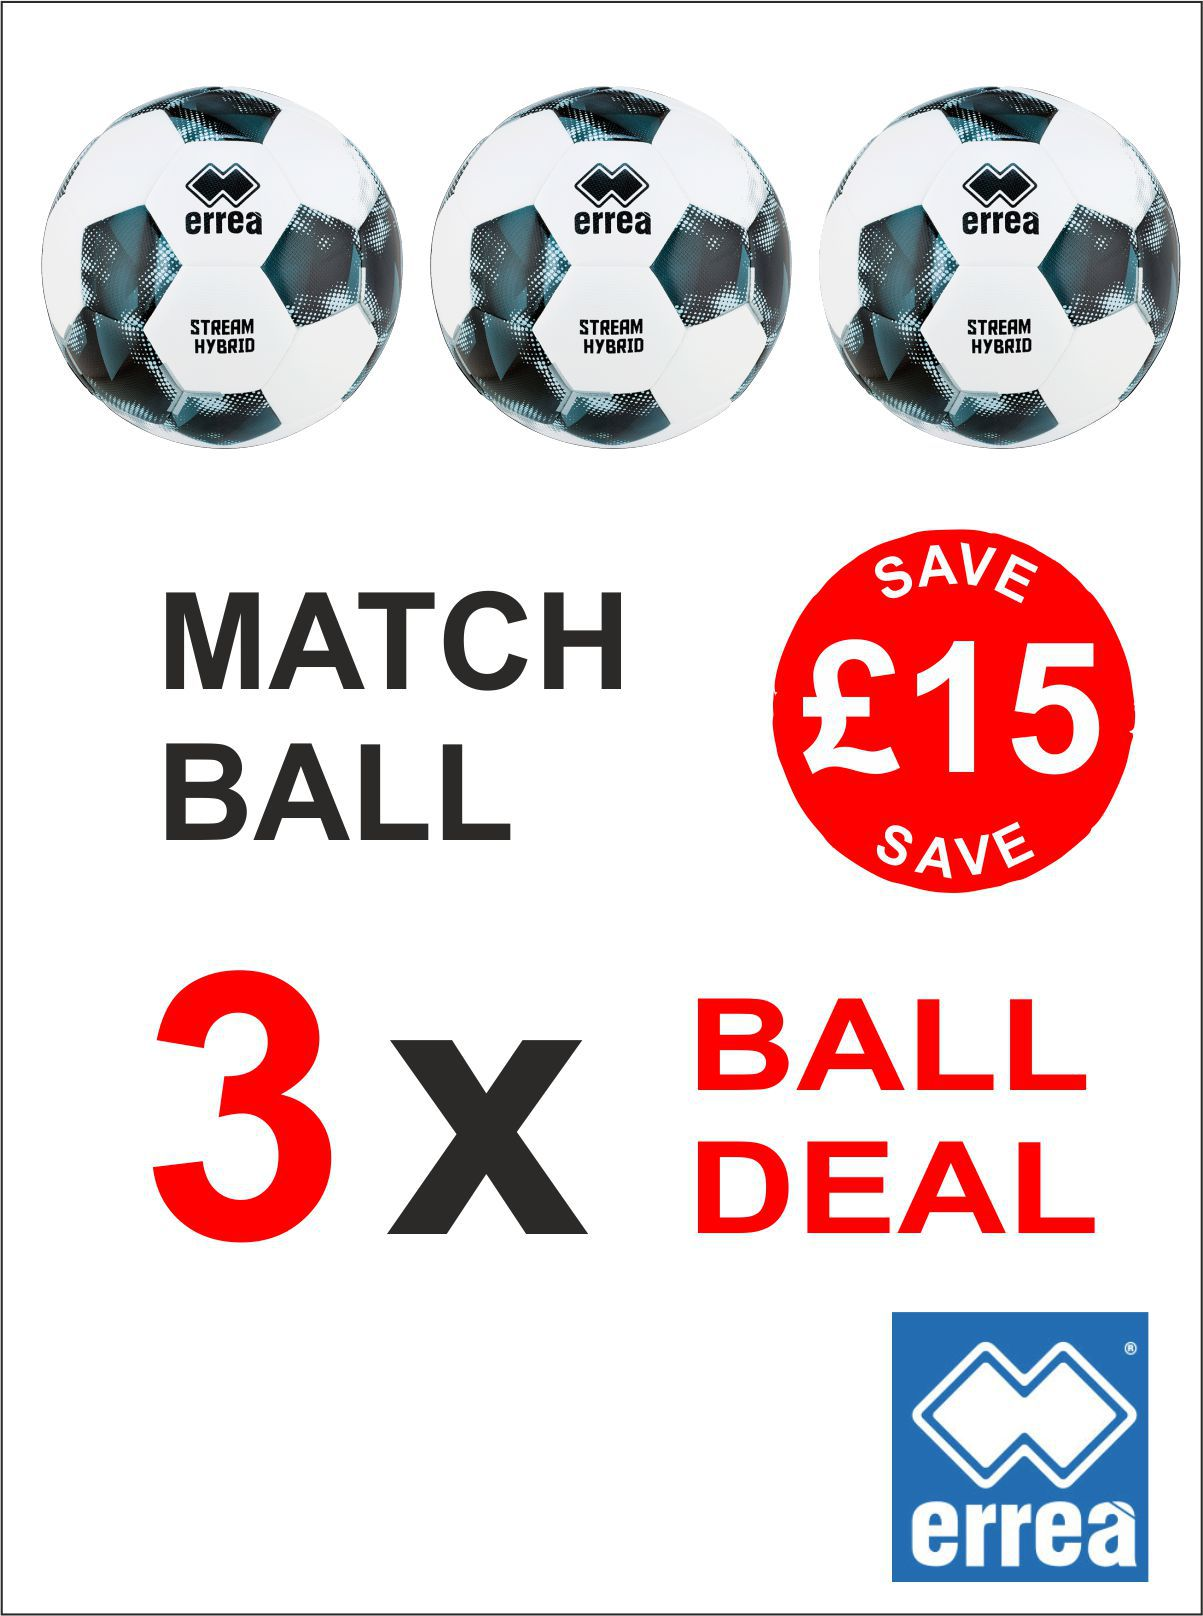 Stream Hybrid Match Ball Deal